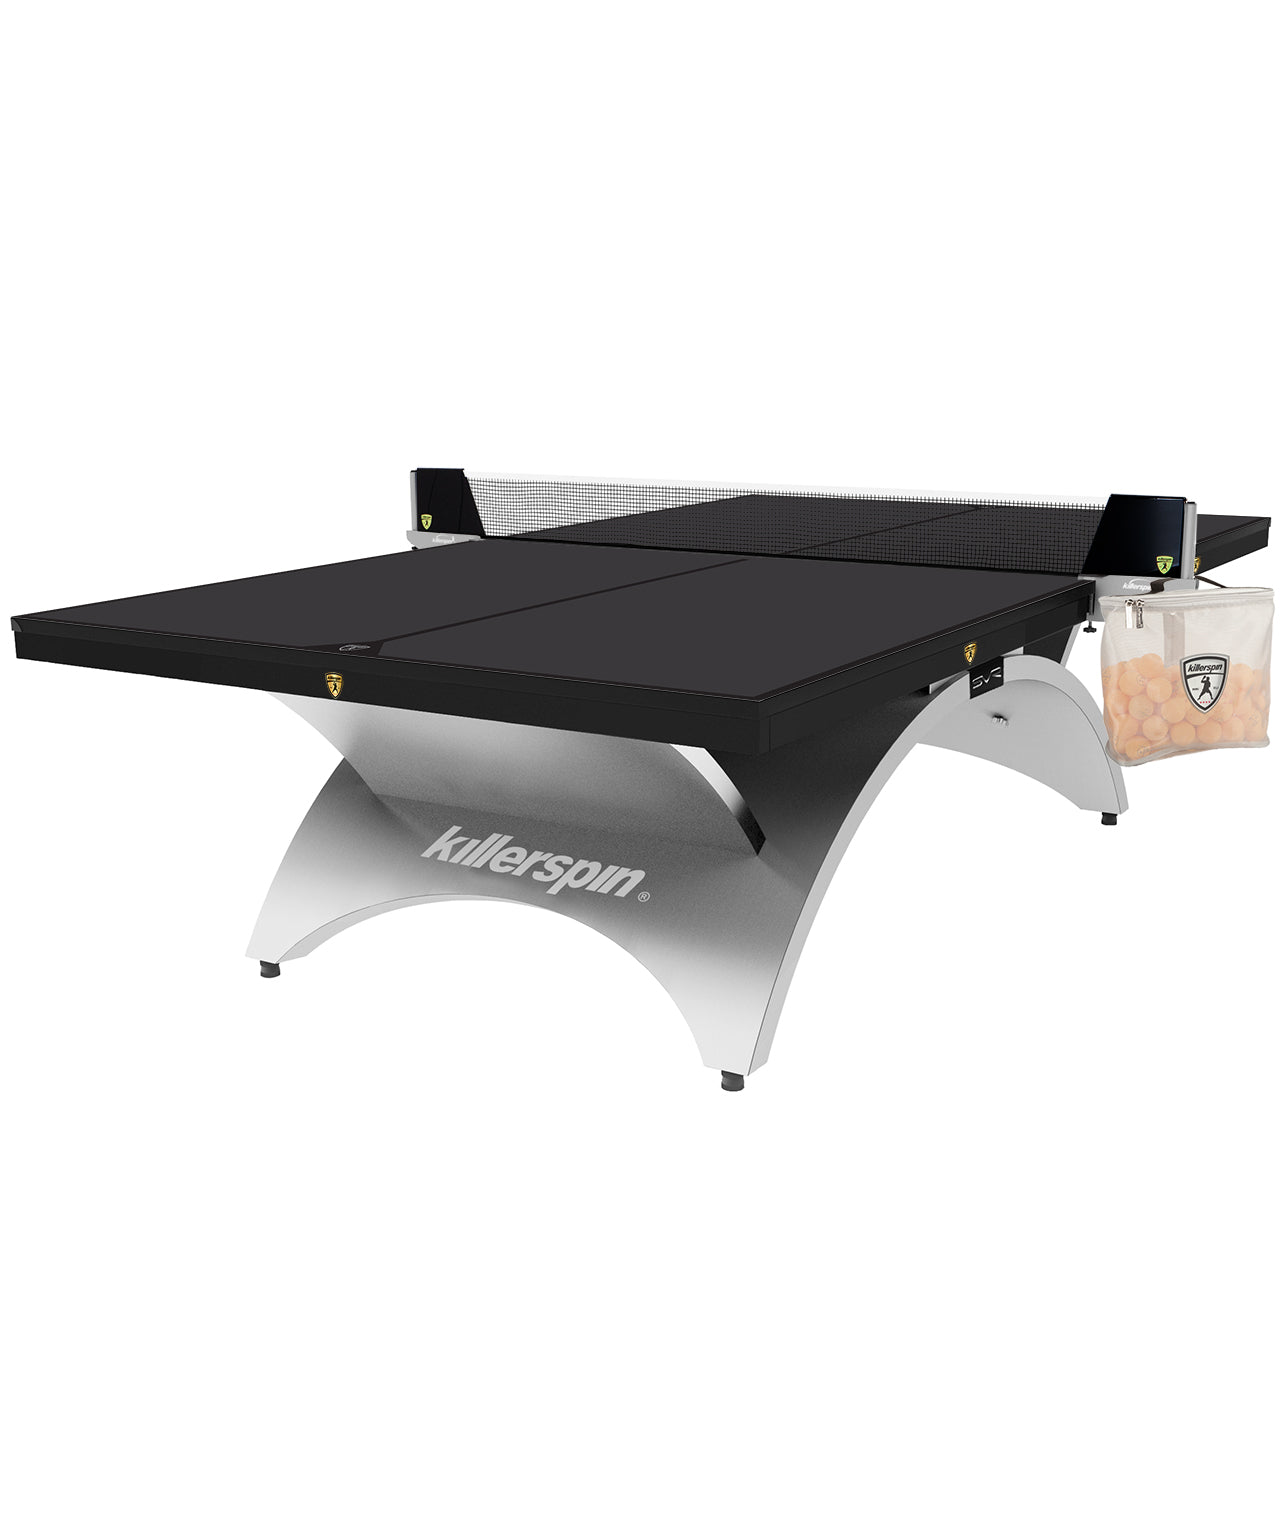 Killerspin Table Tennis Table  Revolution SVR-B Classic